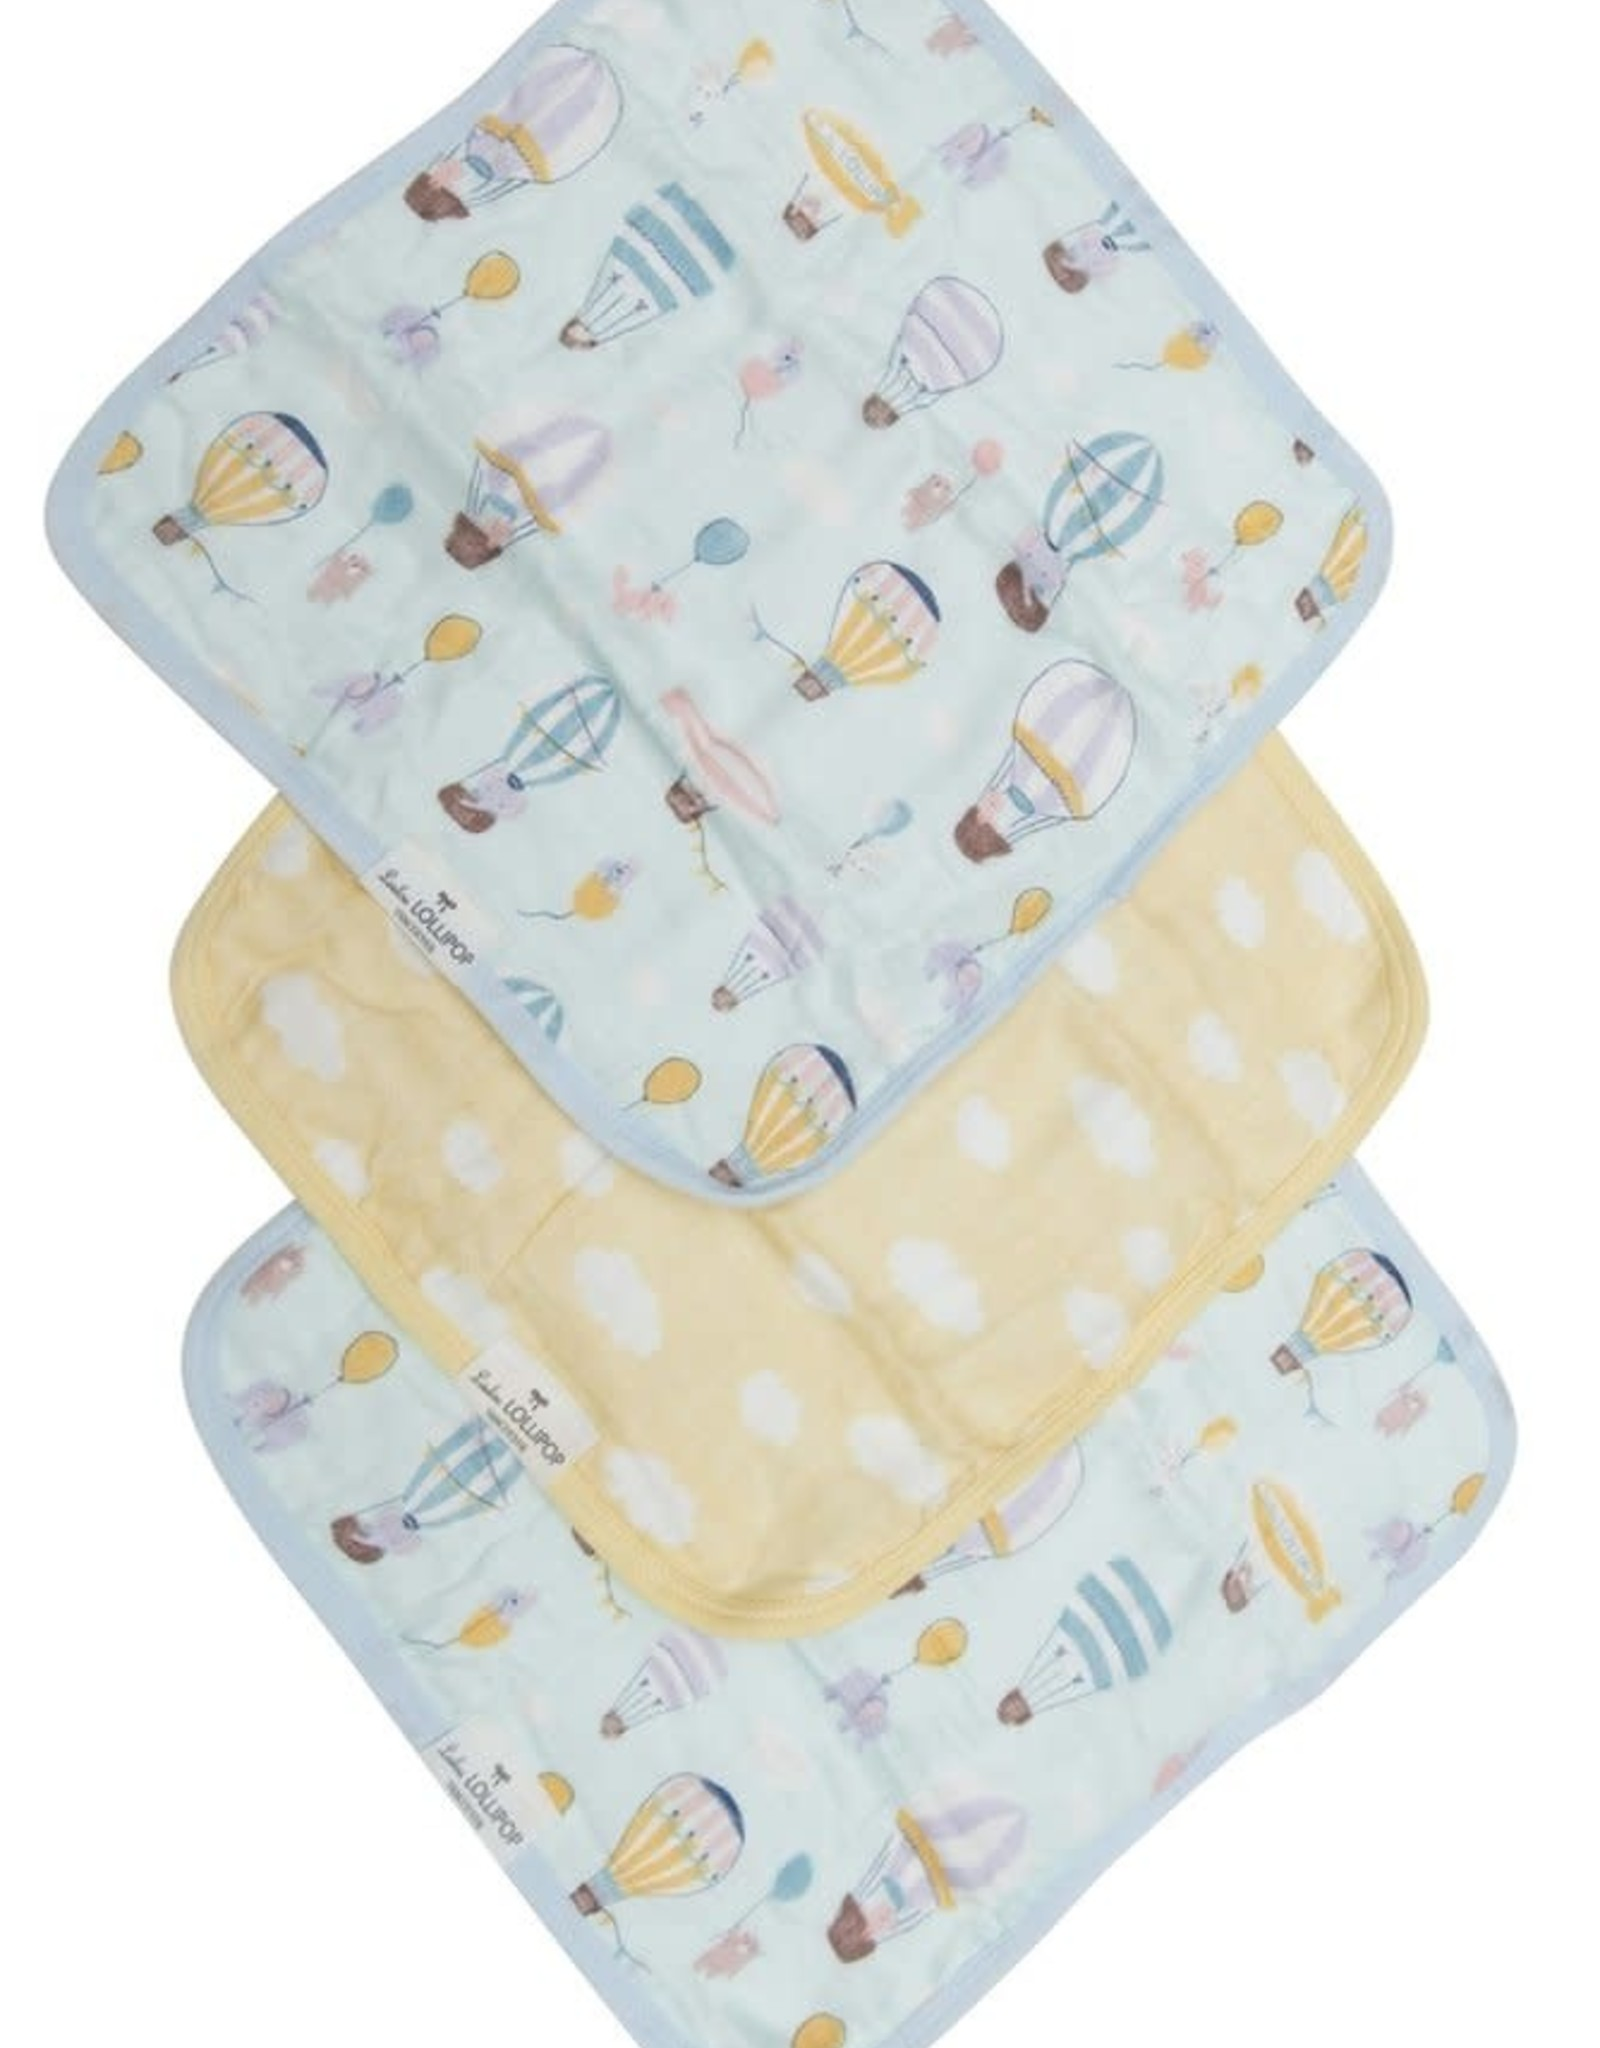 LouLou Lollipop LoulouLOLLIPOP Washcloth 3-Pieces Set Up Up Away